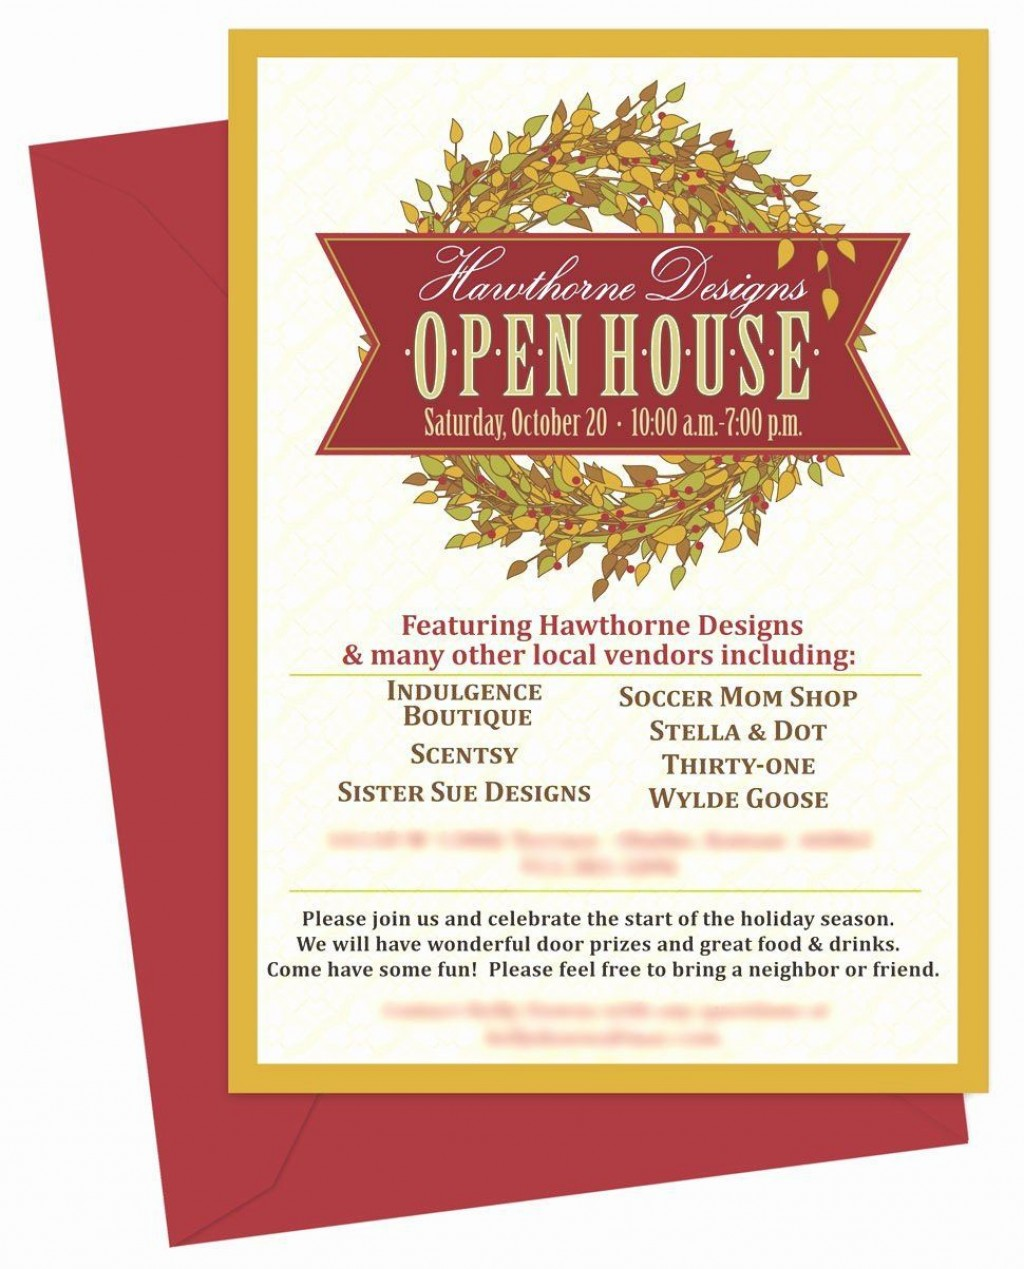 001 Incredible Holiday Open House Invitation Template Photo  Christma Free Printable Wording IdeaLarge